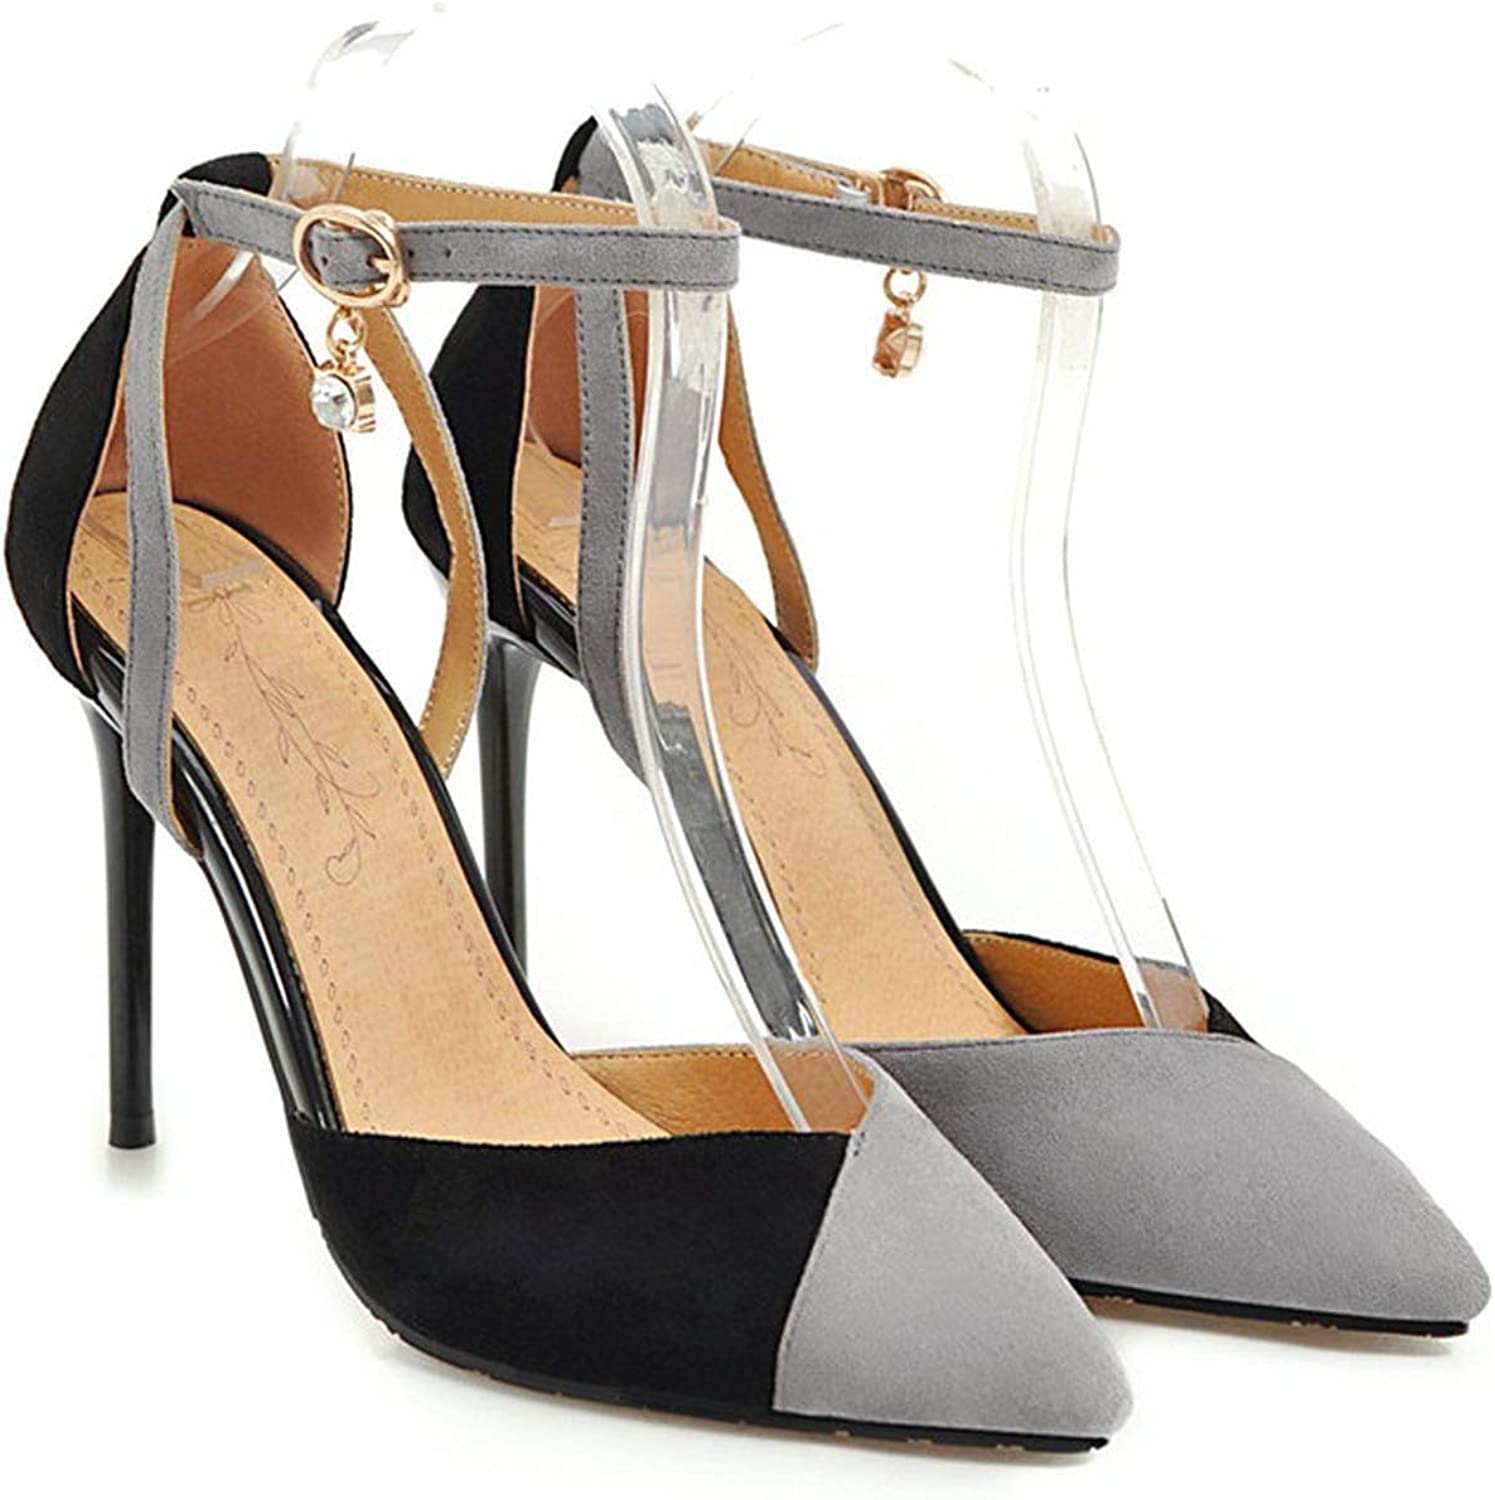 Sam Carle Womens Wedding Pumps,Pointed Toe High Heel Crystal Square Buckle Sexy Shallow Mouth shoes